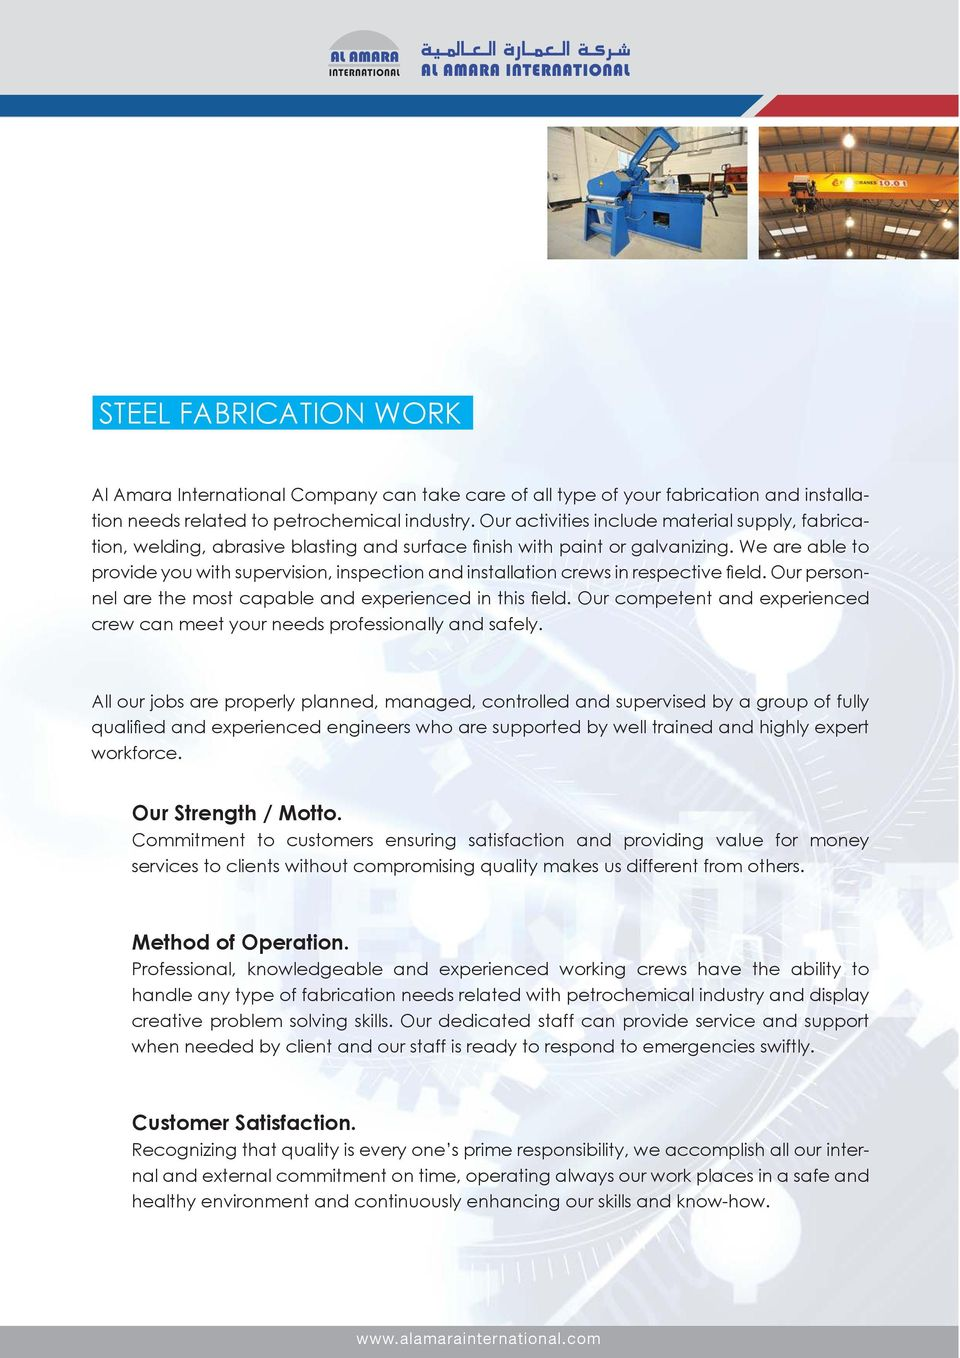 al amara international company profile al amara international we are able to provide you supervision inspection and installation crews in respective field